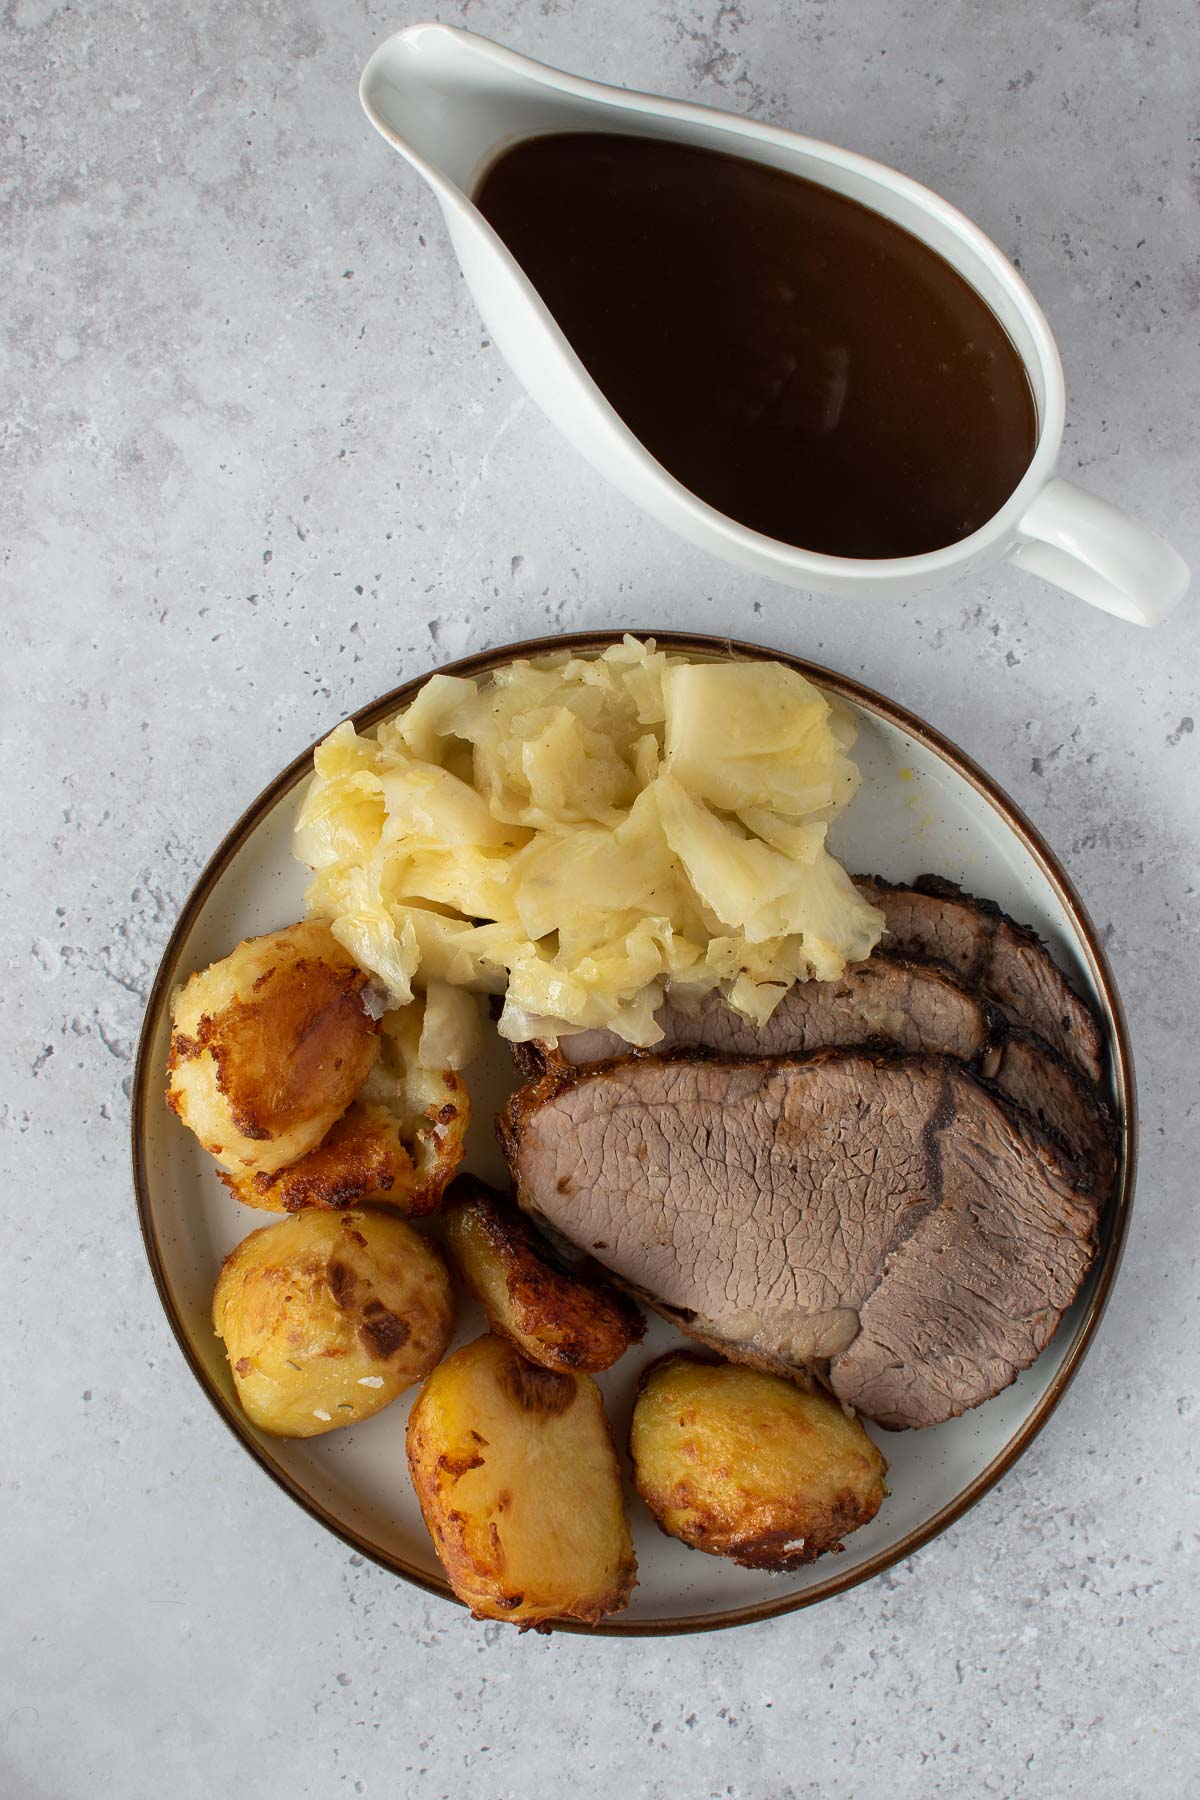 A plate with roast beef, cabbage and roasted potatoes, with gravy on the side.